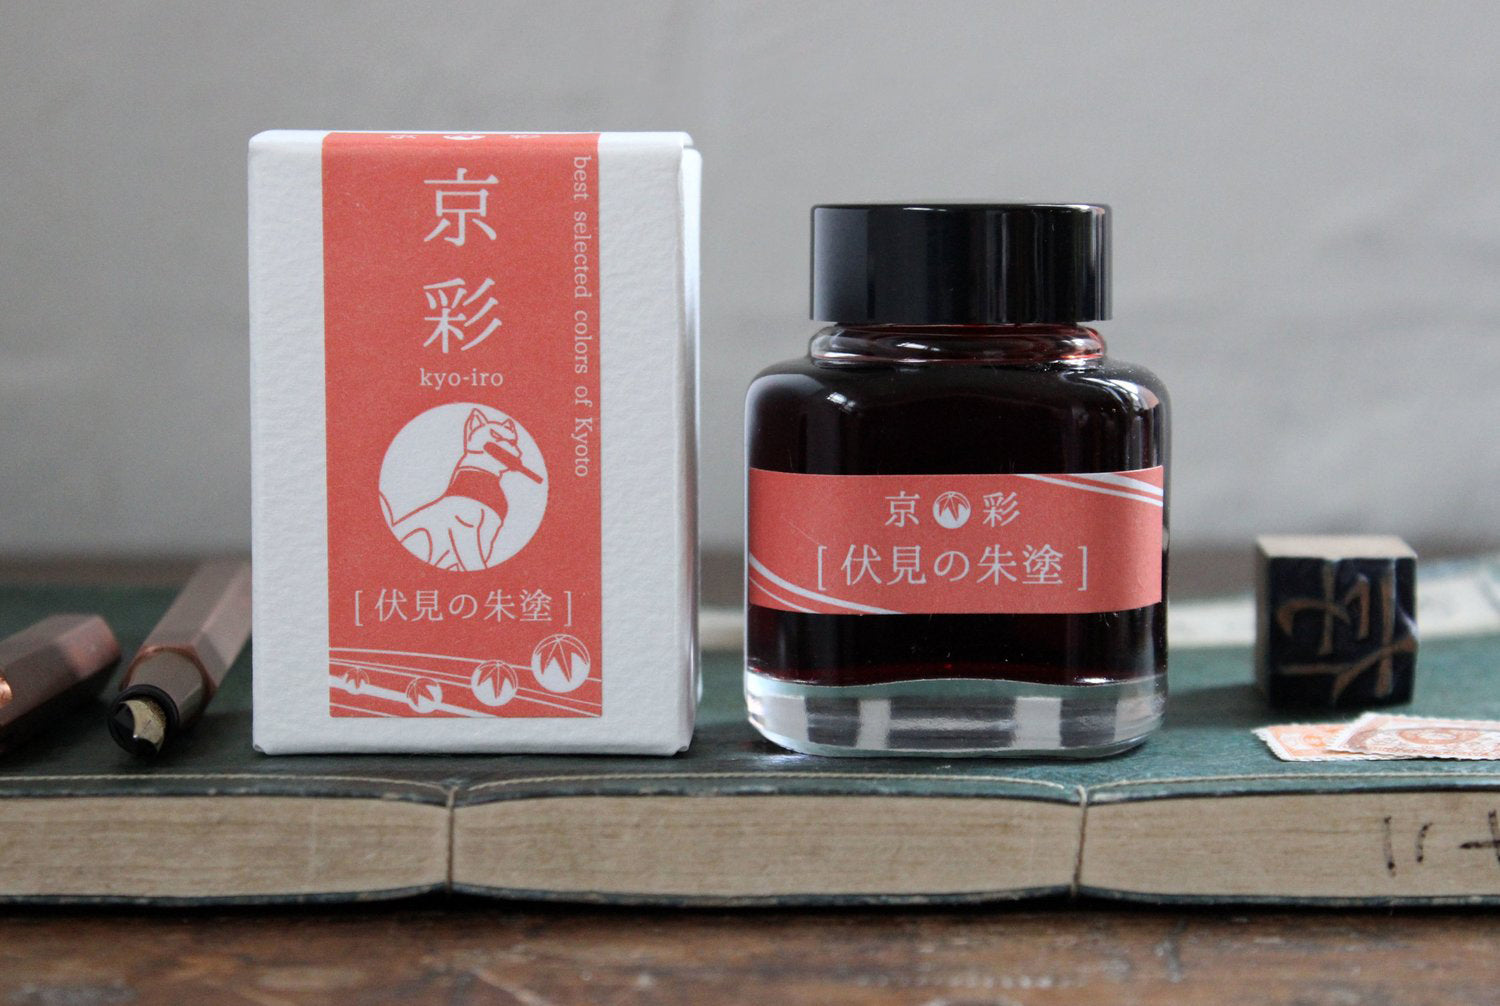 Kyo-Iro Ink - Flaming Red of Fushimi